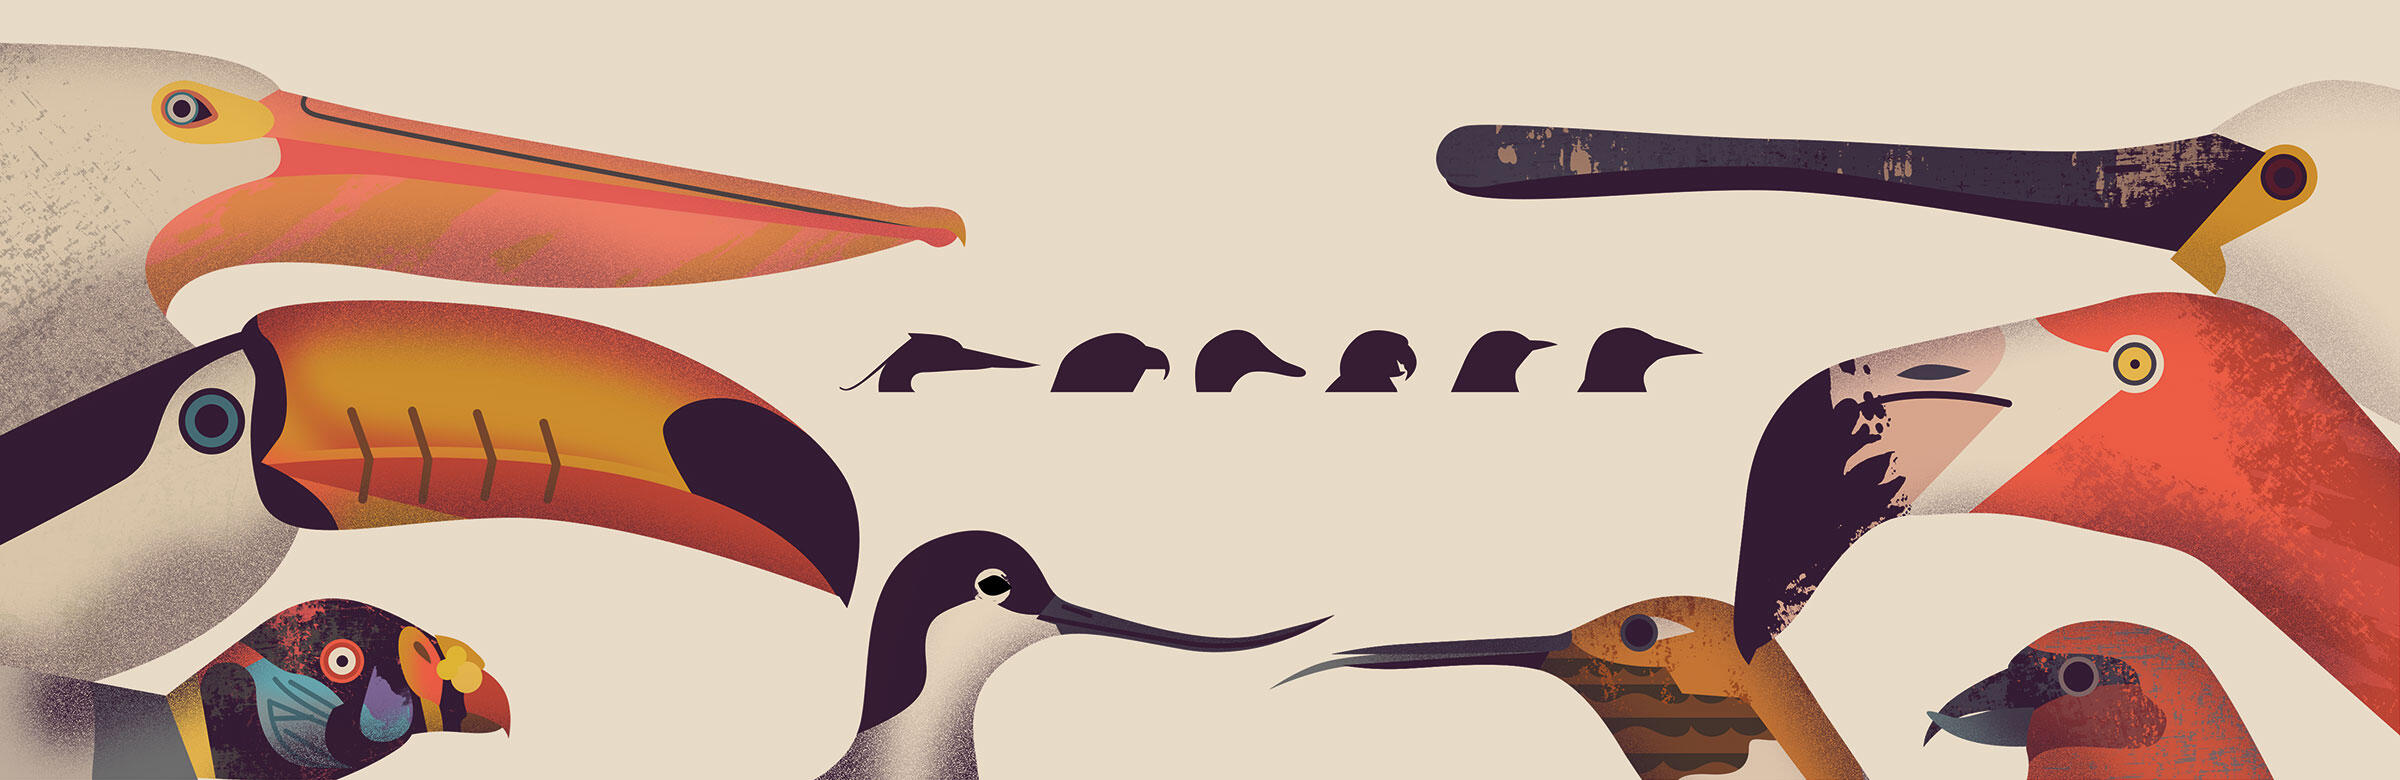 Poster of bird beaks from Natural World by Amanda Wood and Mike Jolley. Illustrated by Owen Davey